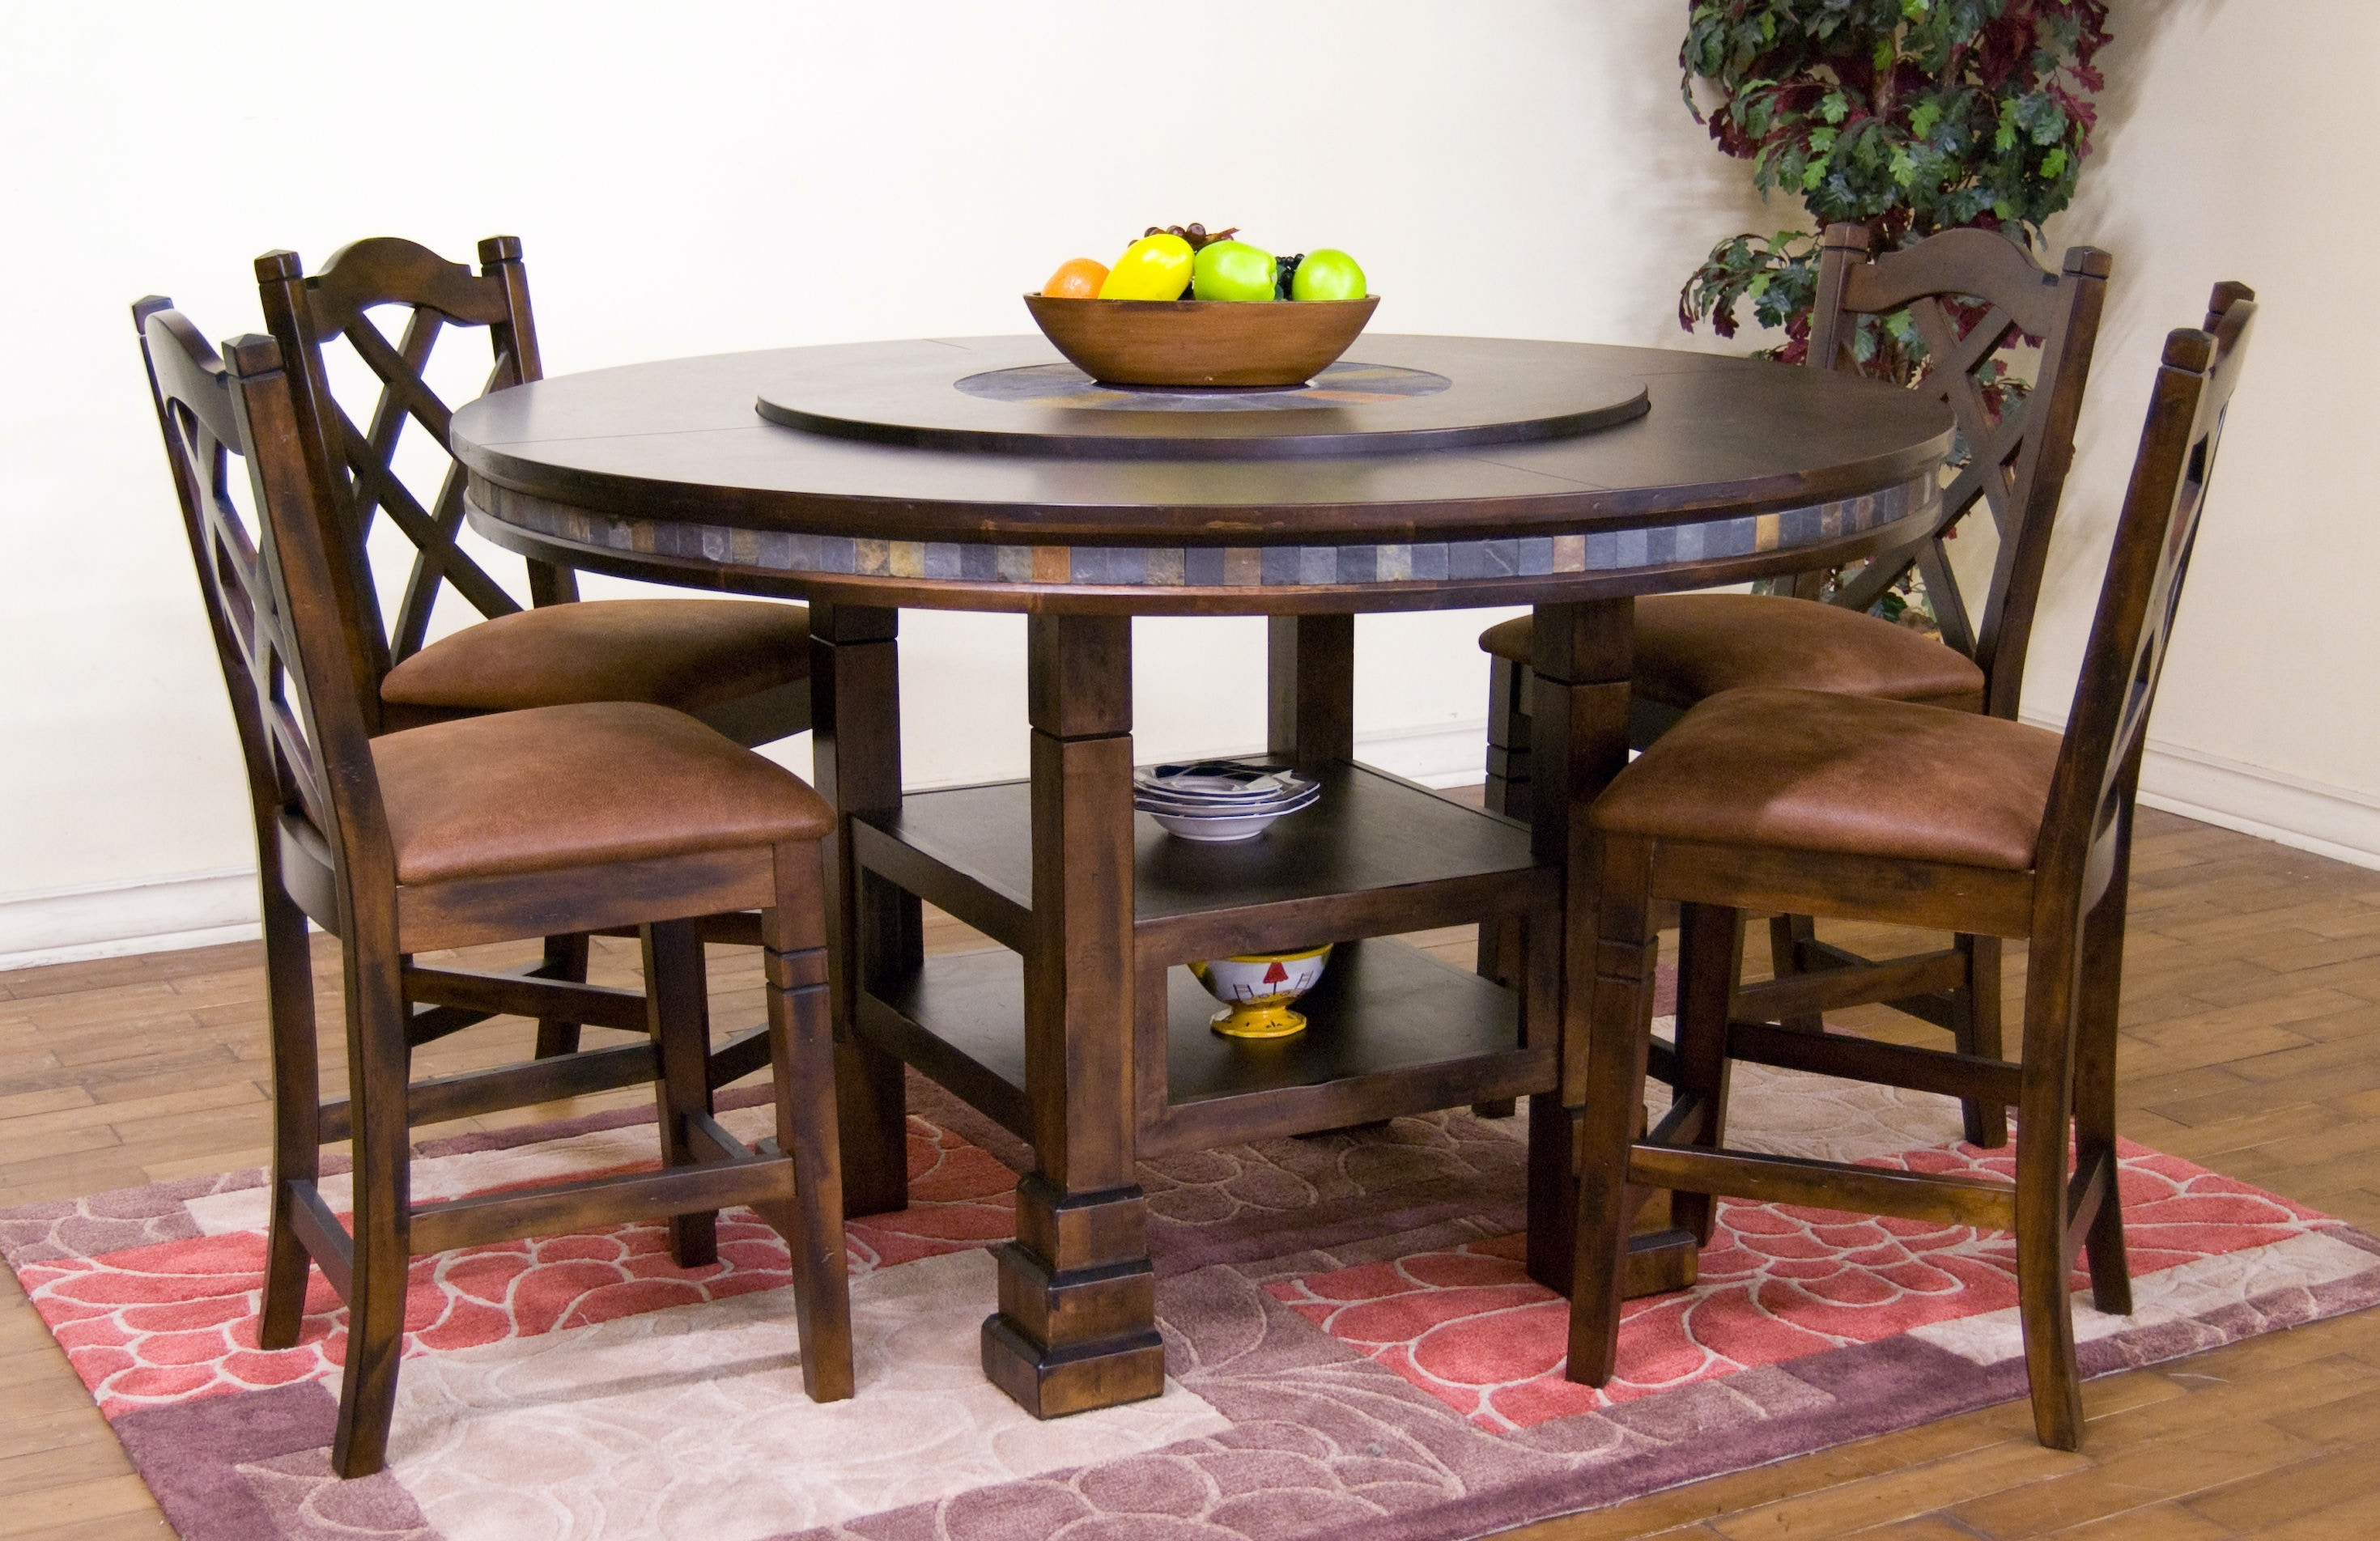 Perfect Sunny Designs Santa Fe Round Table With Lazy Susan 1225DC